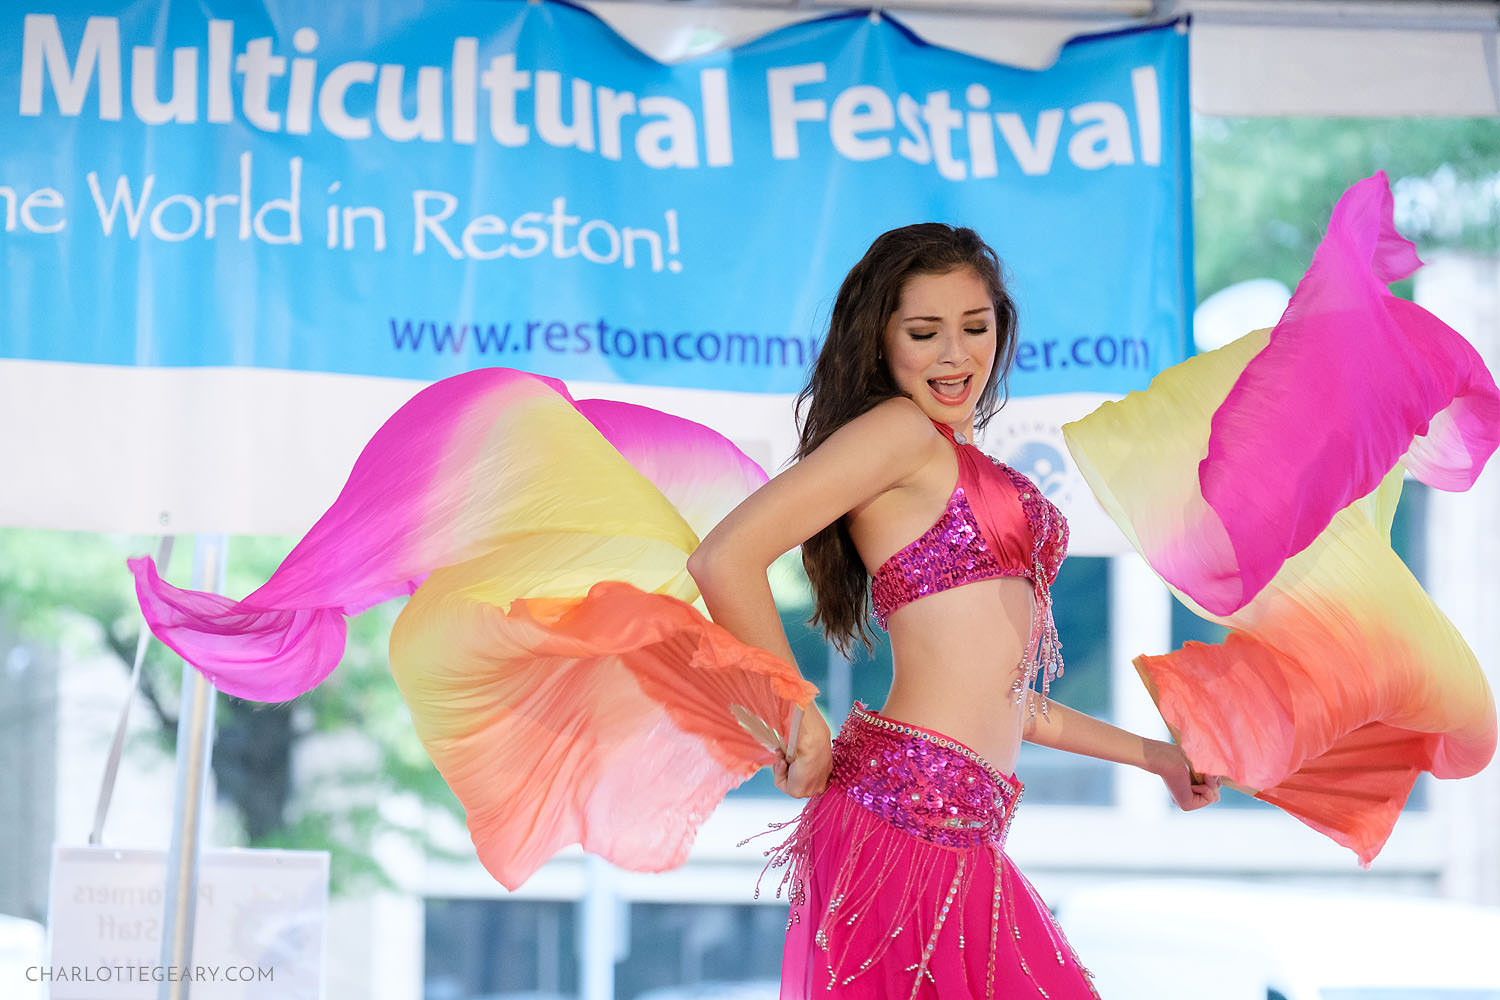 Reston Multicultural Festival belly dancer Madison Nunez